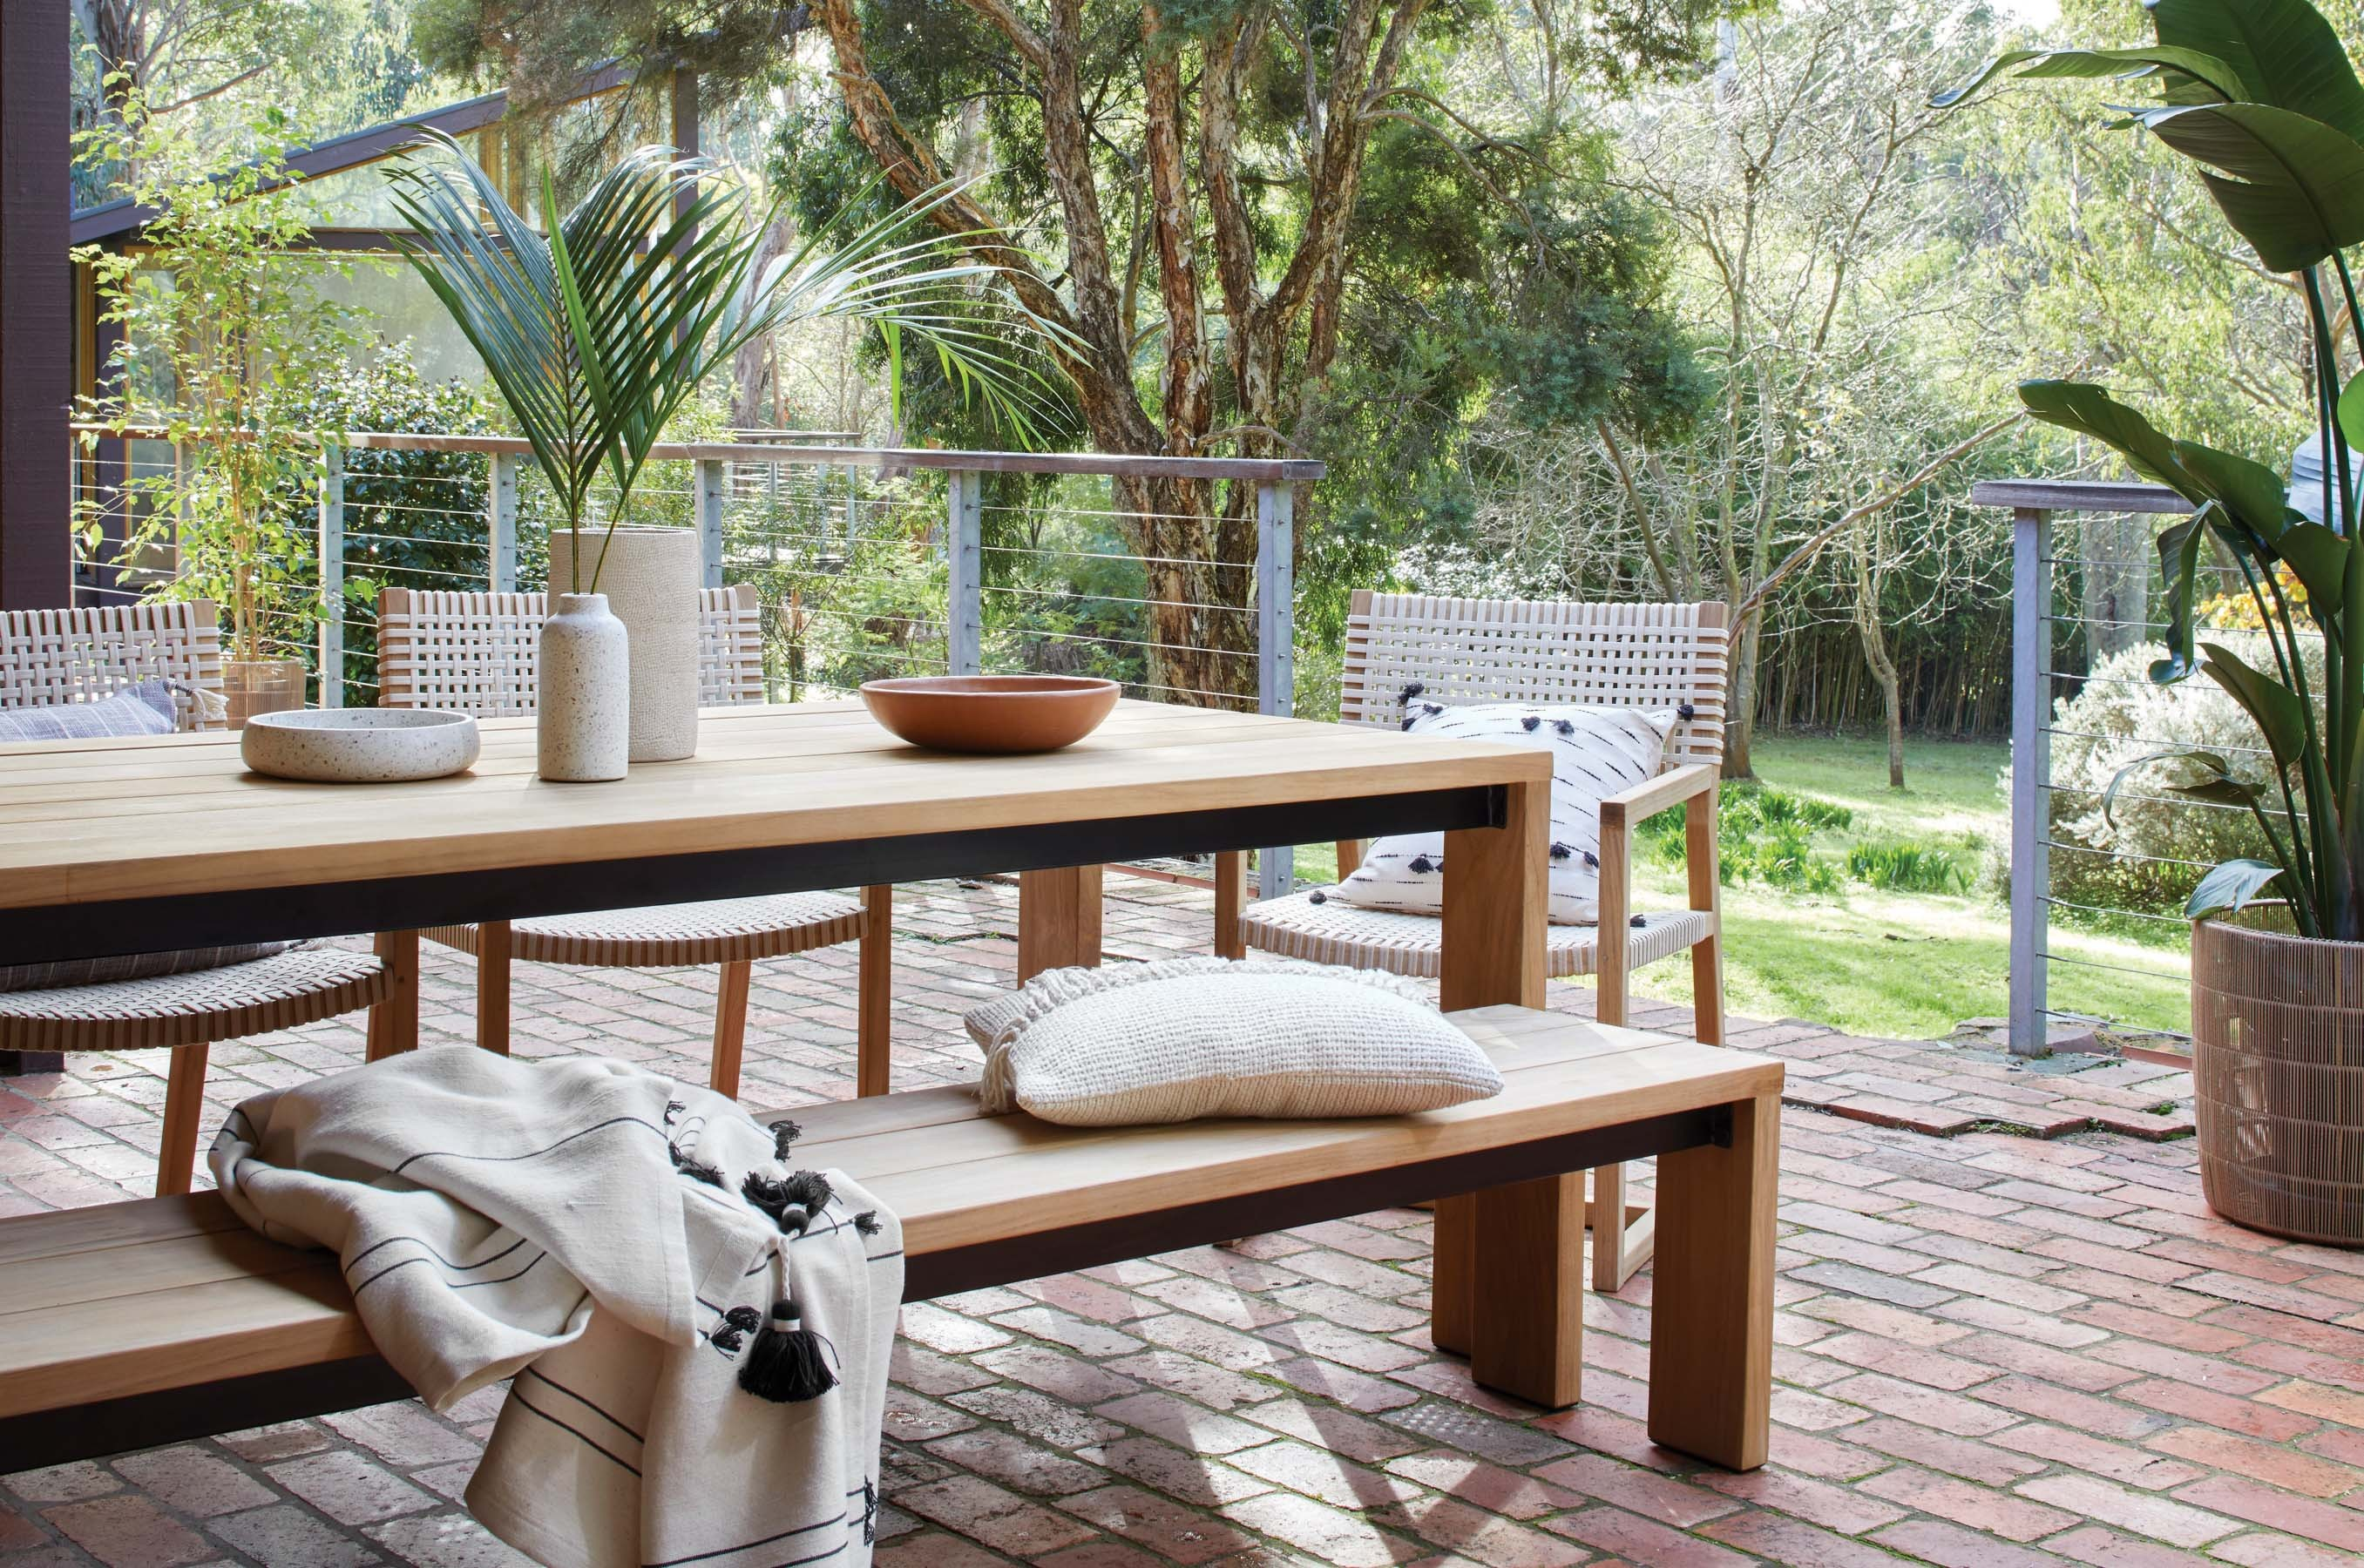 Furniture Gallery Dining-Chairs-Benches-Stools hamptons-bench-01